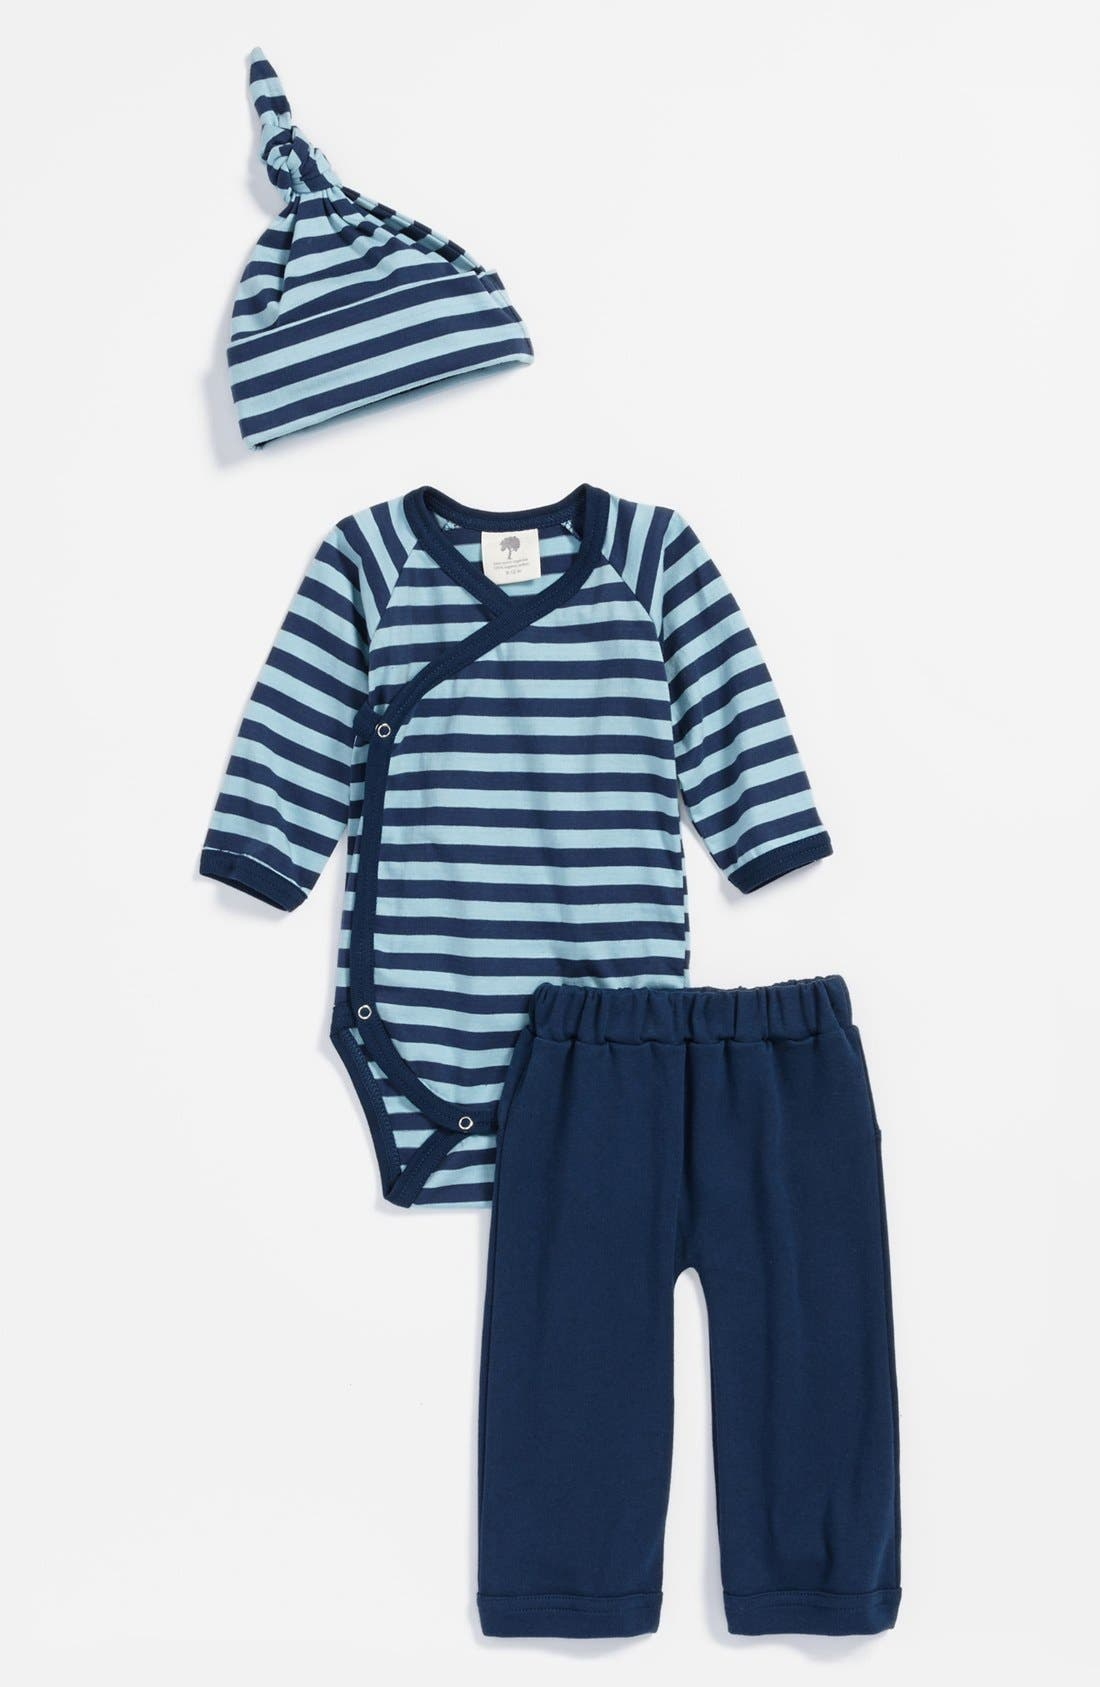 Alternate Image 1 Selected - Kate Quinn Organics 'Play' Bodysuit, Pants & Hat Set (Baby Boys)